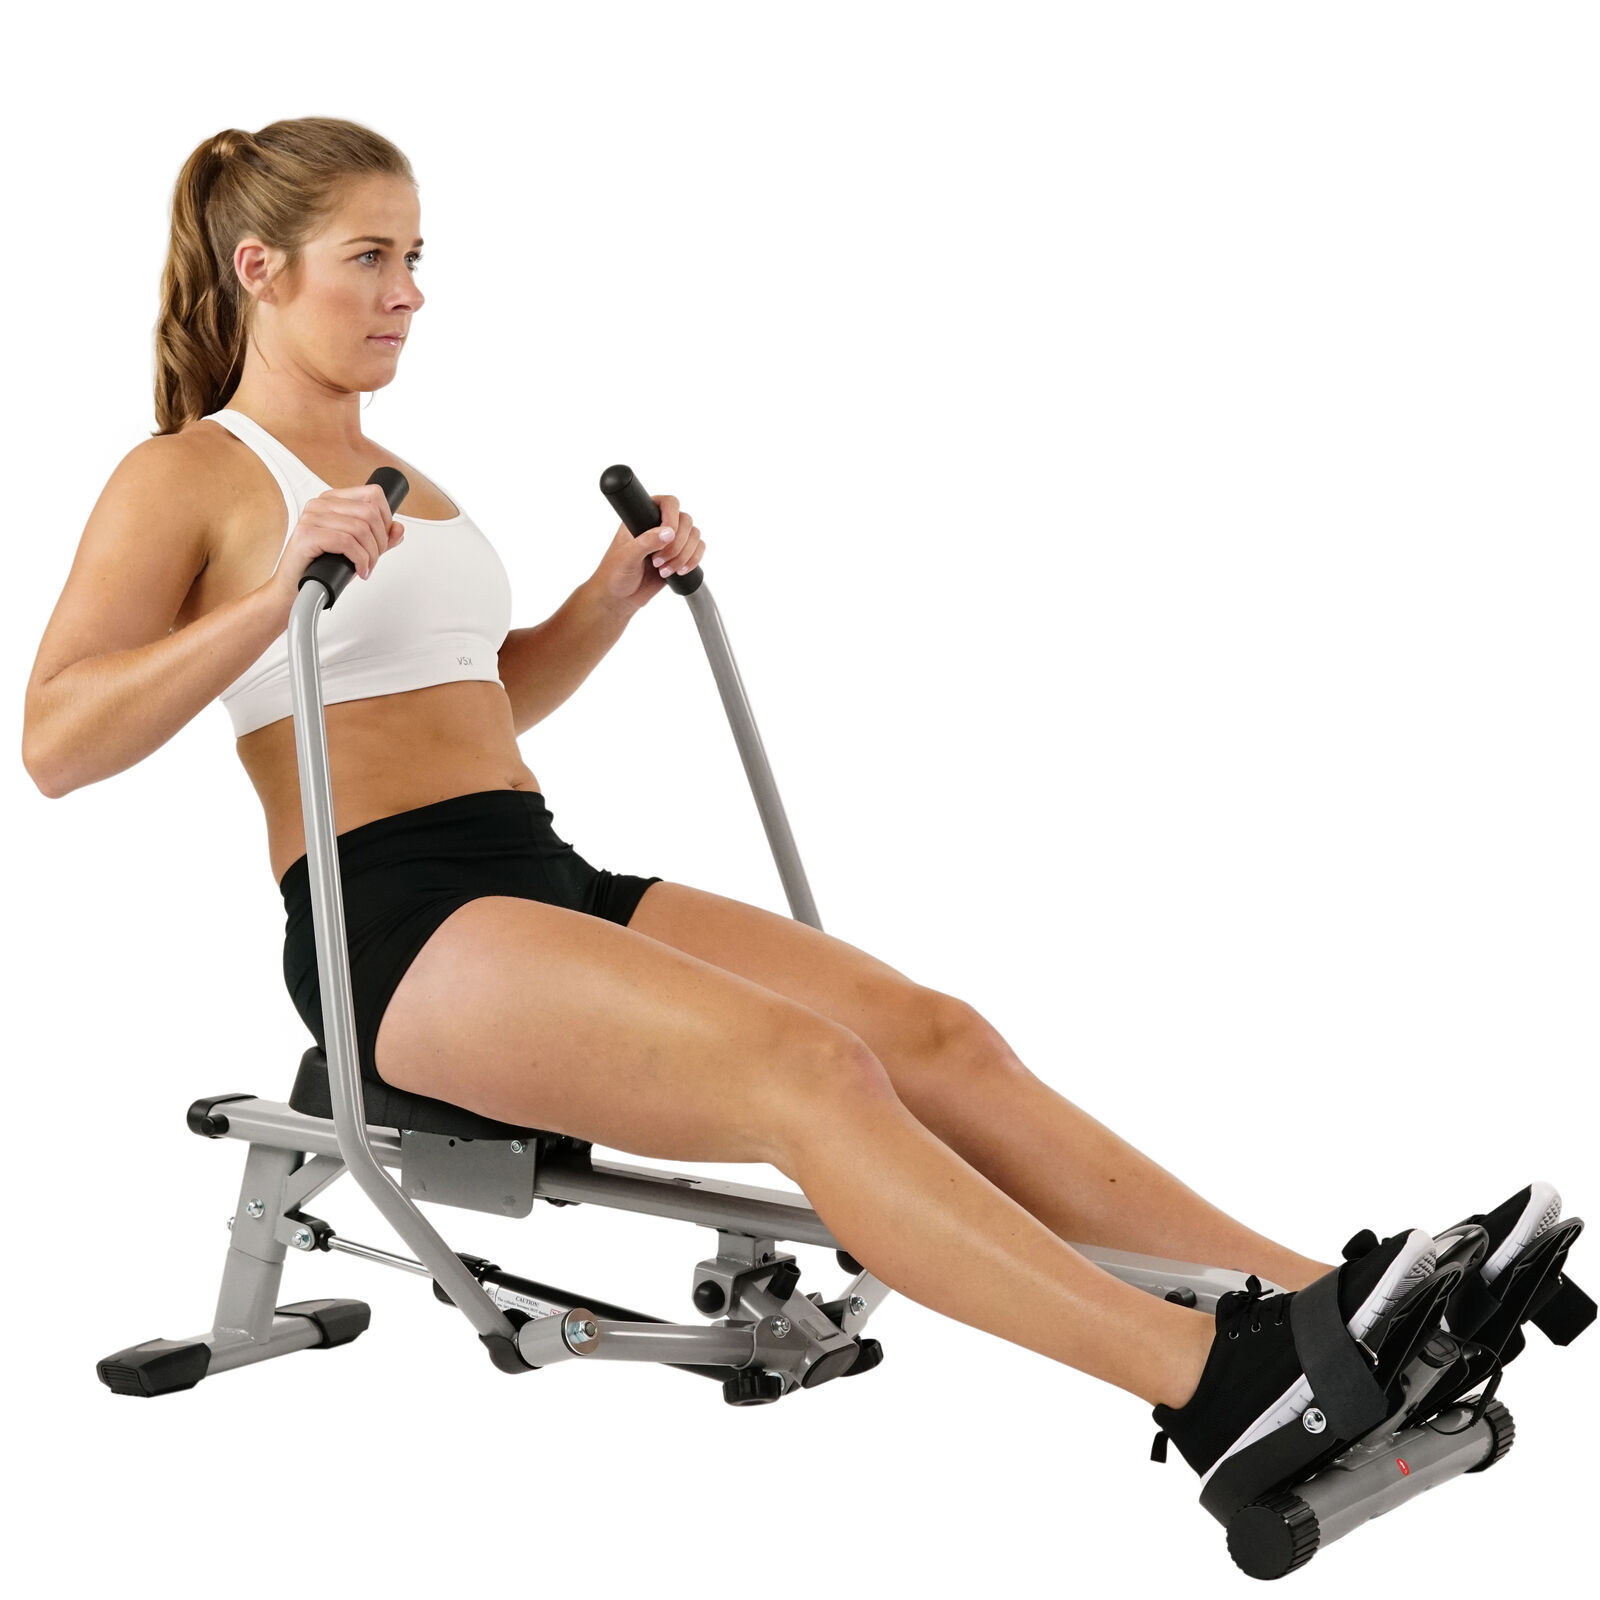 Sunny Health and Fitness Full Motion Rowing Machine Rower with 350lb Capacity an 1